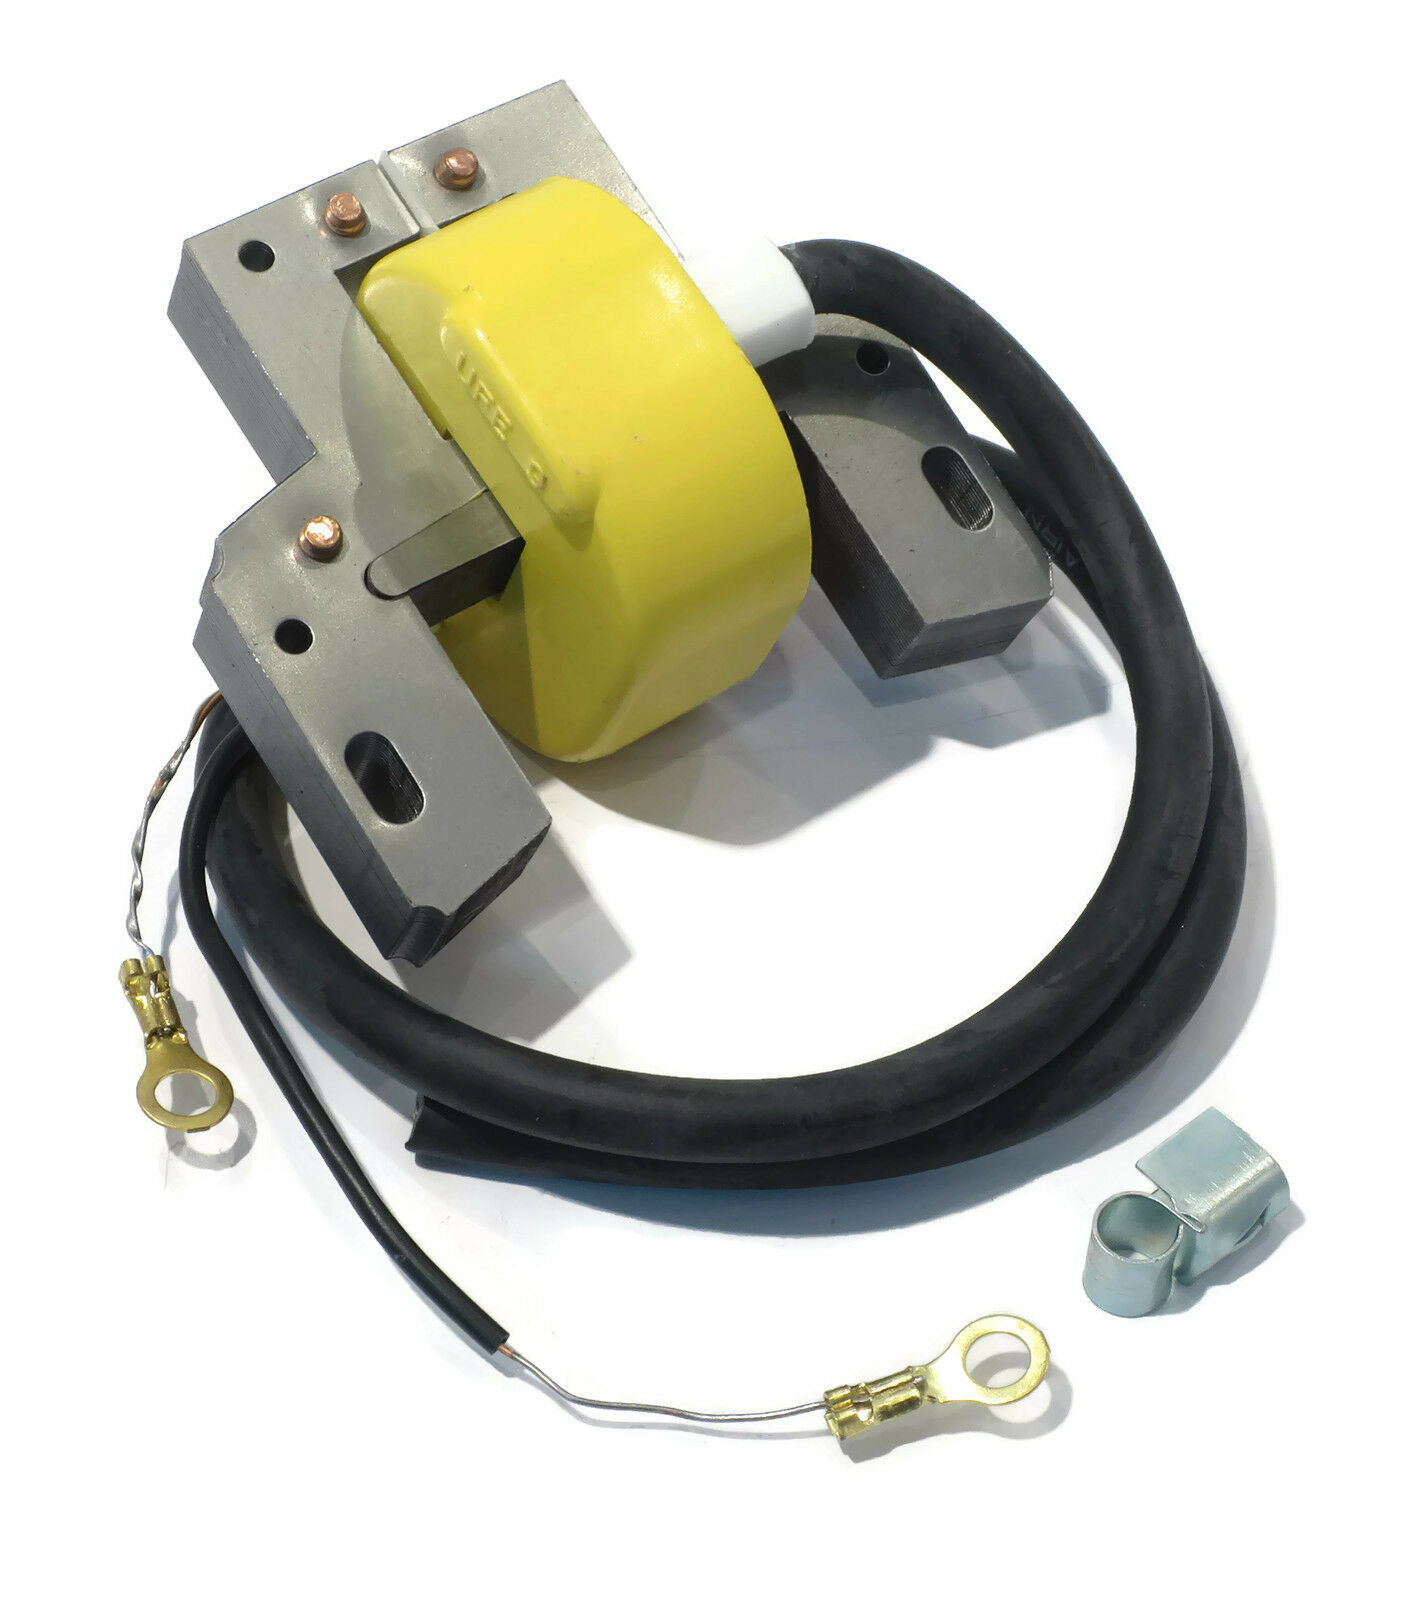 briggs and stratton ignition coil wiring diagram guitar maker module magneto for 298968